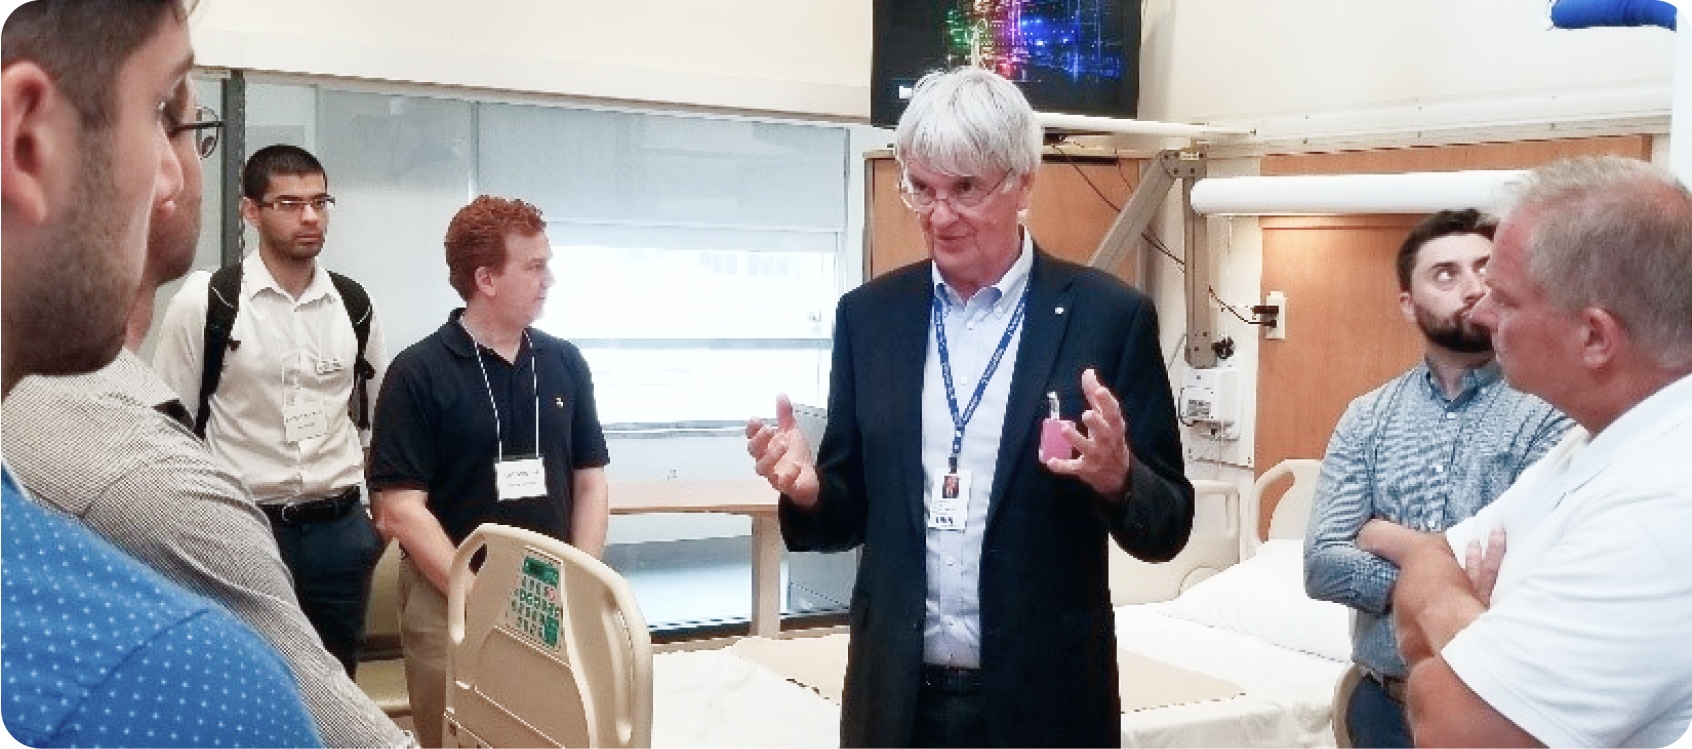 Dr. Geoff Fernie talking to a group of diverse people about his hospital room simulator